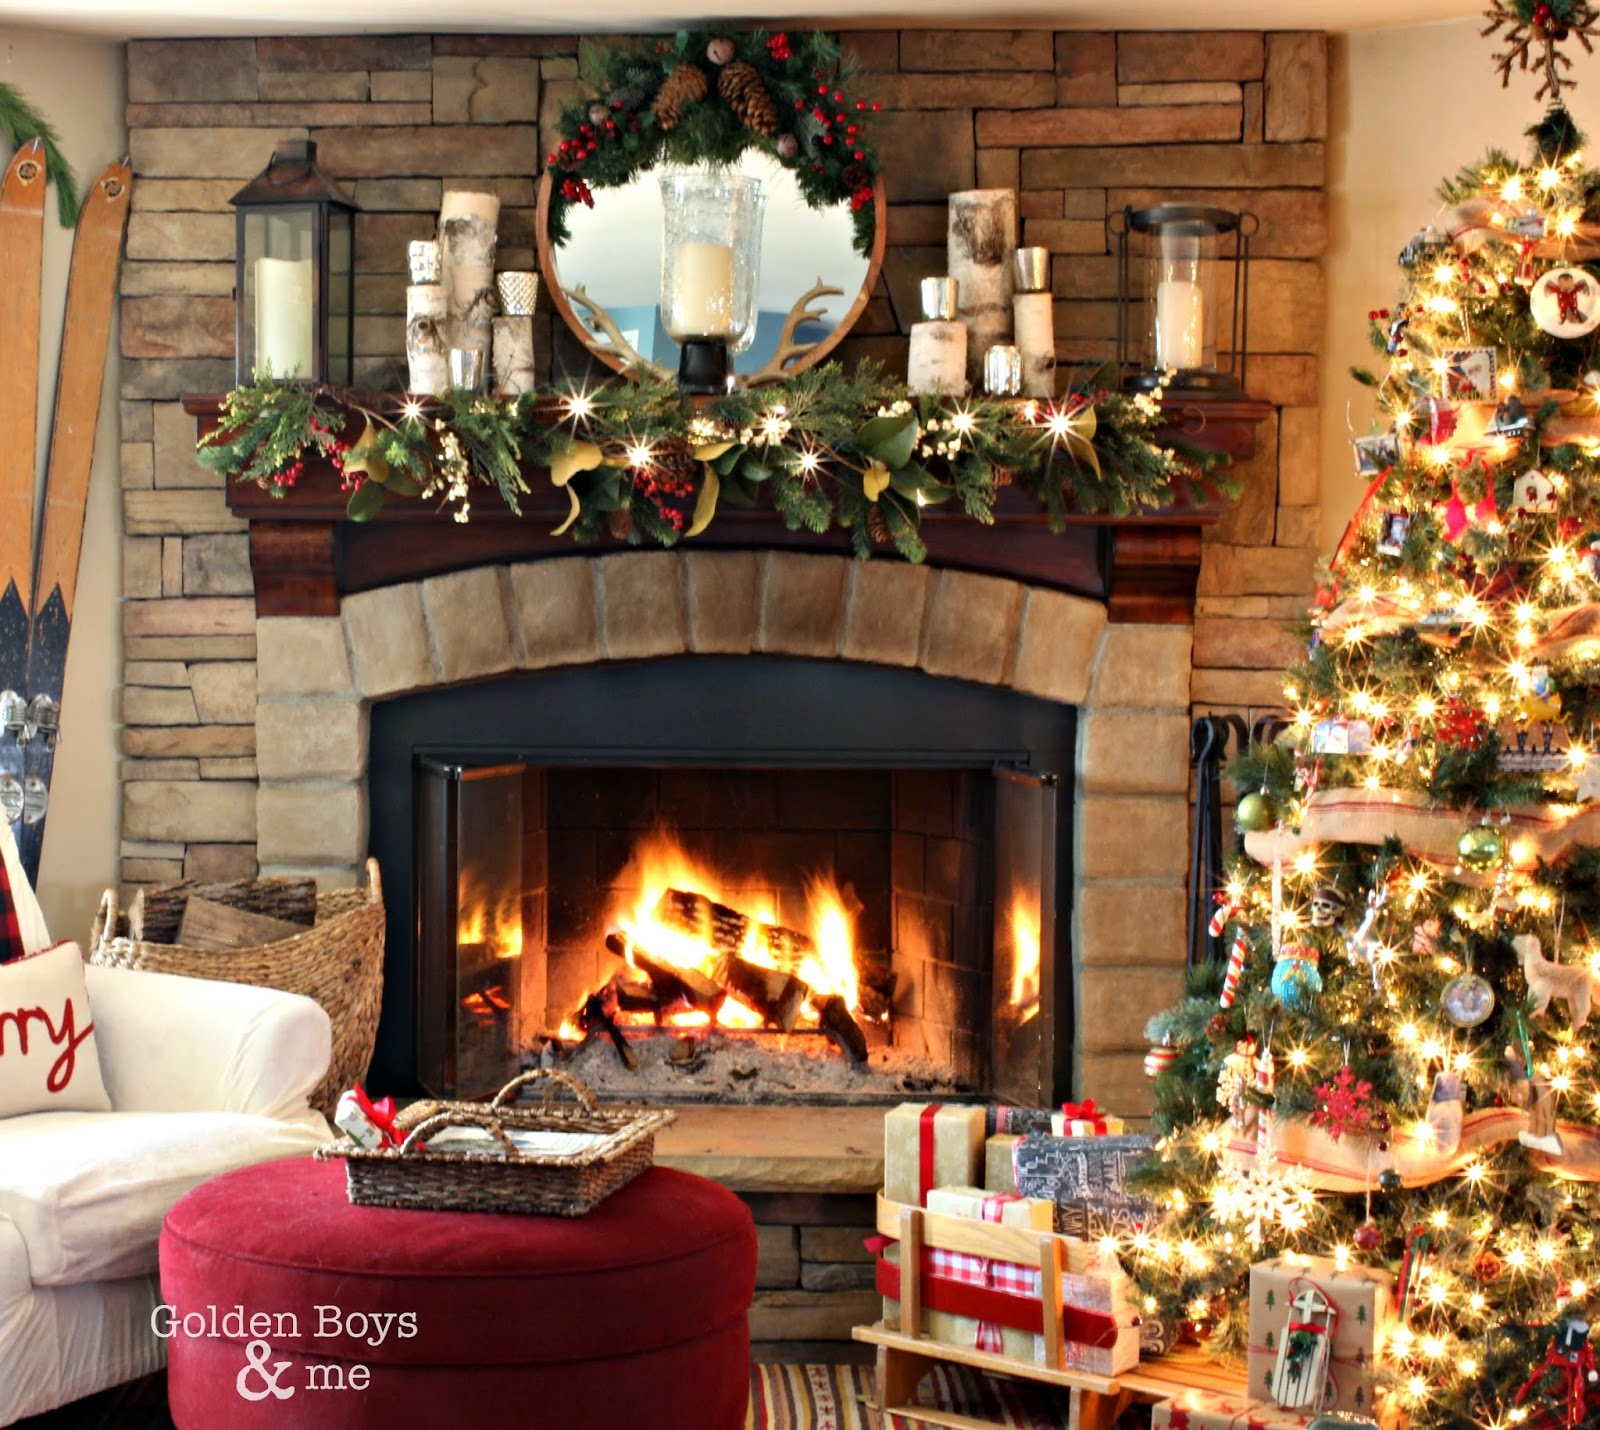 Corner stone fireplace in rustic lodge style Christmas family room-www.goldenboysandme.com